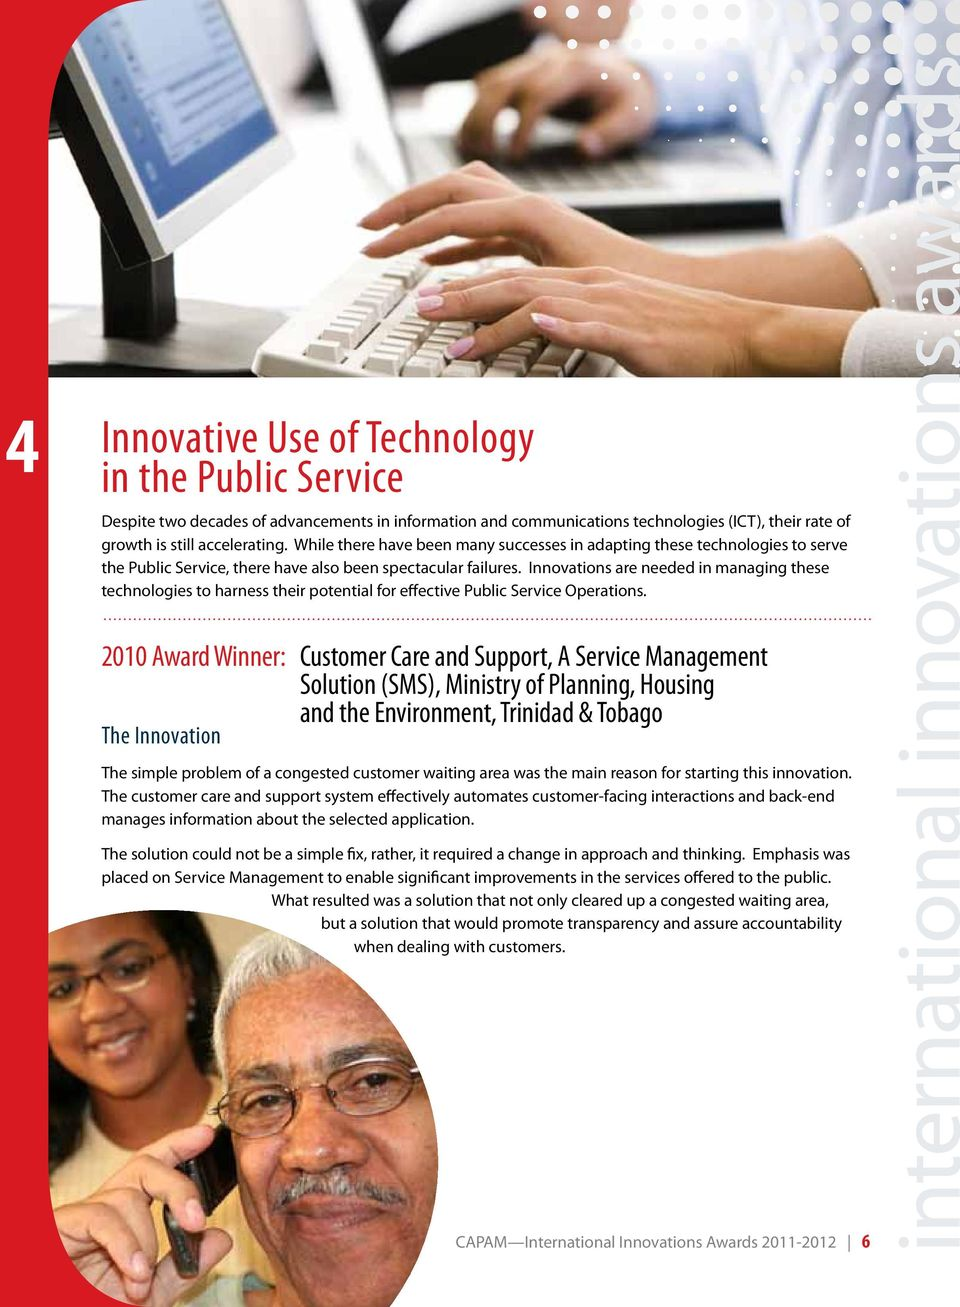 Innovations are needed in managing these technologies to harness their potential for effective Public Service Operations.